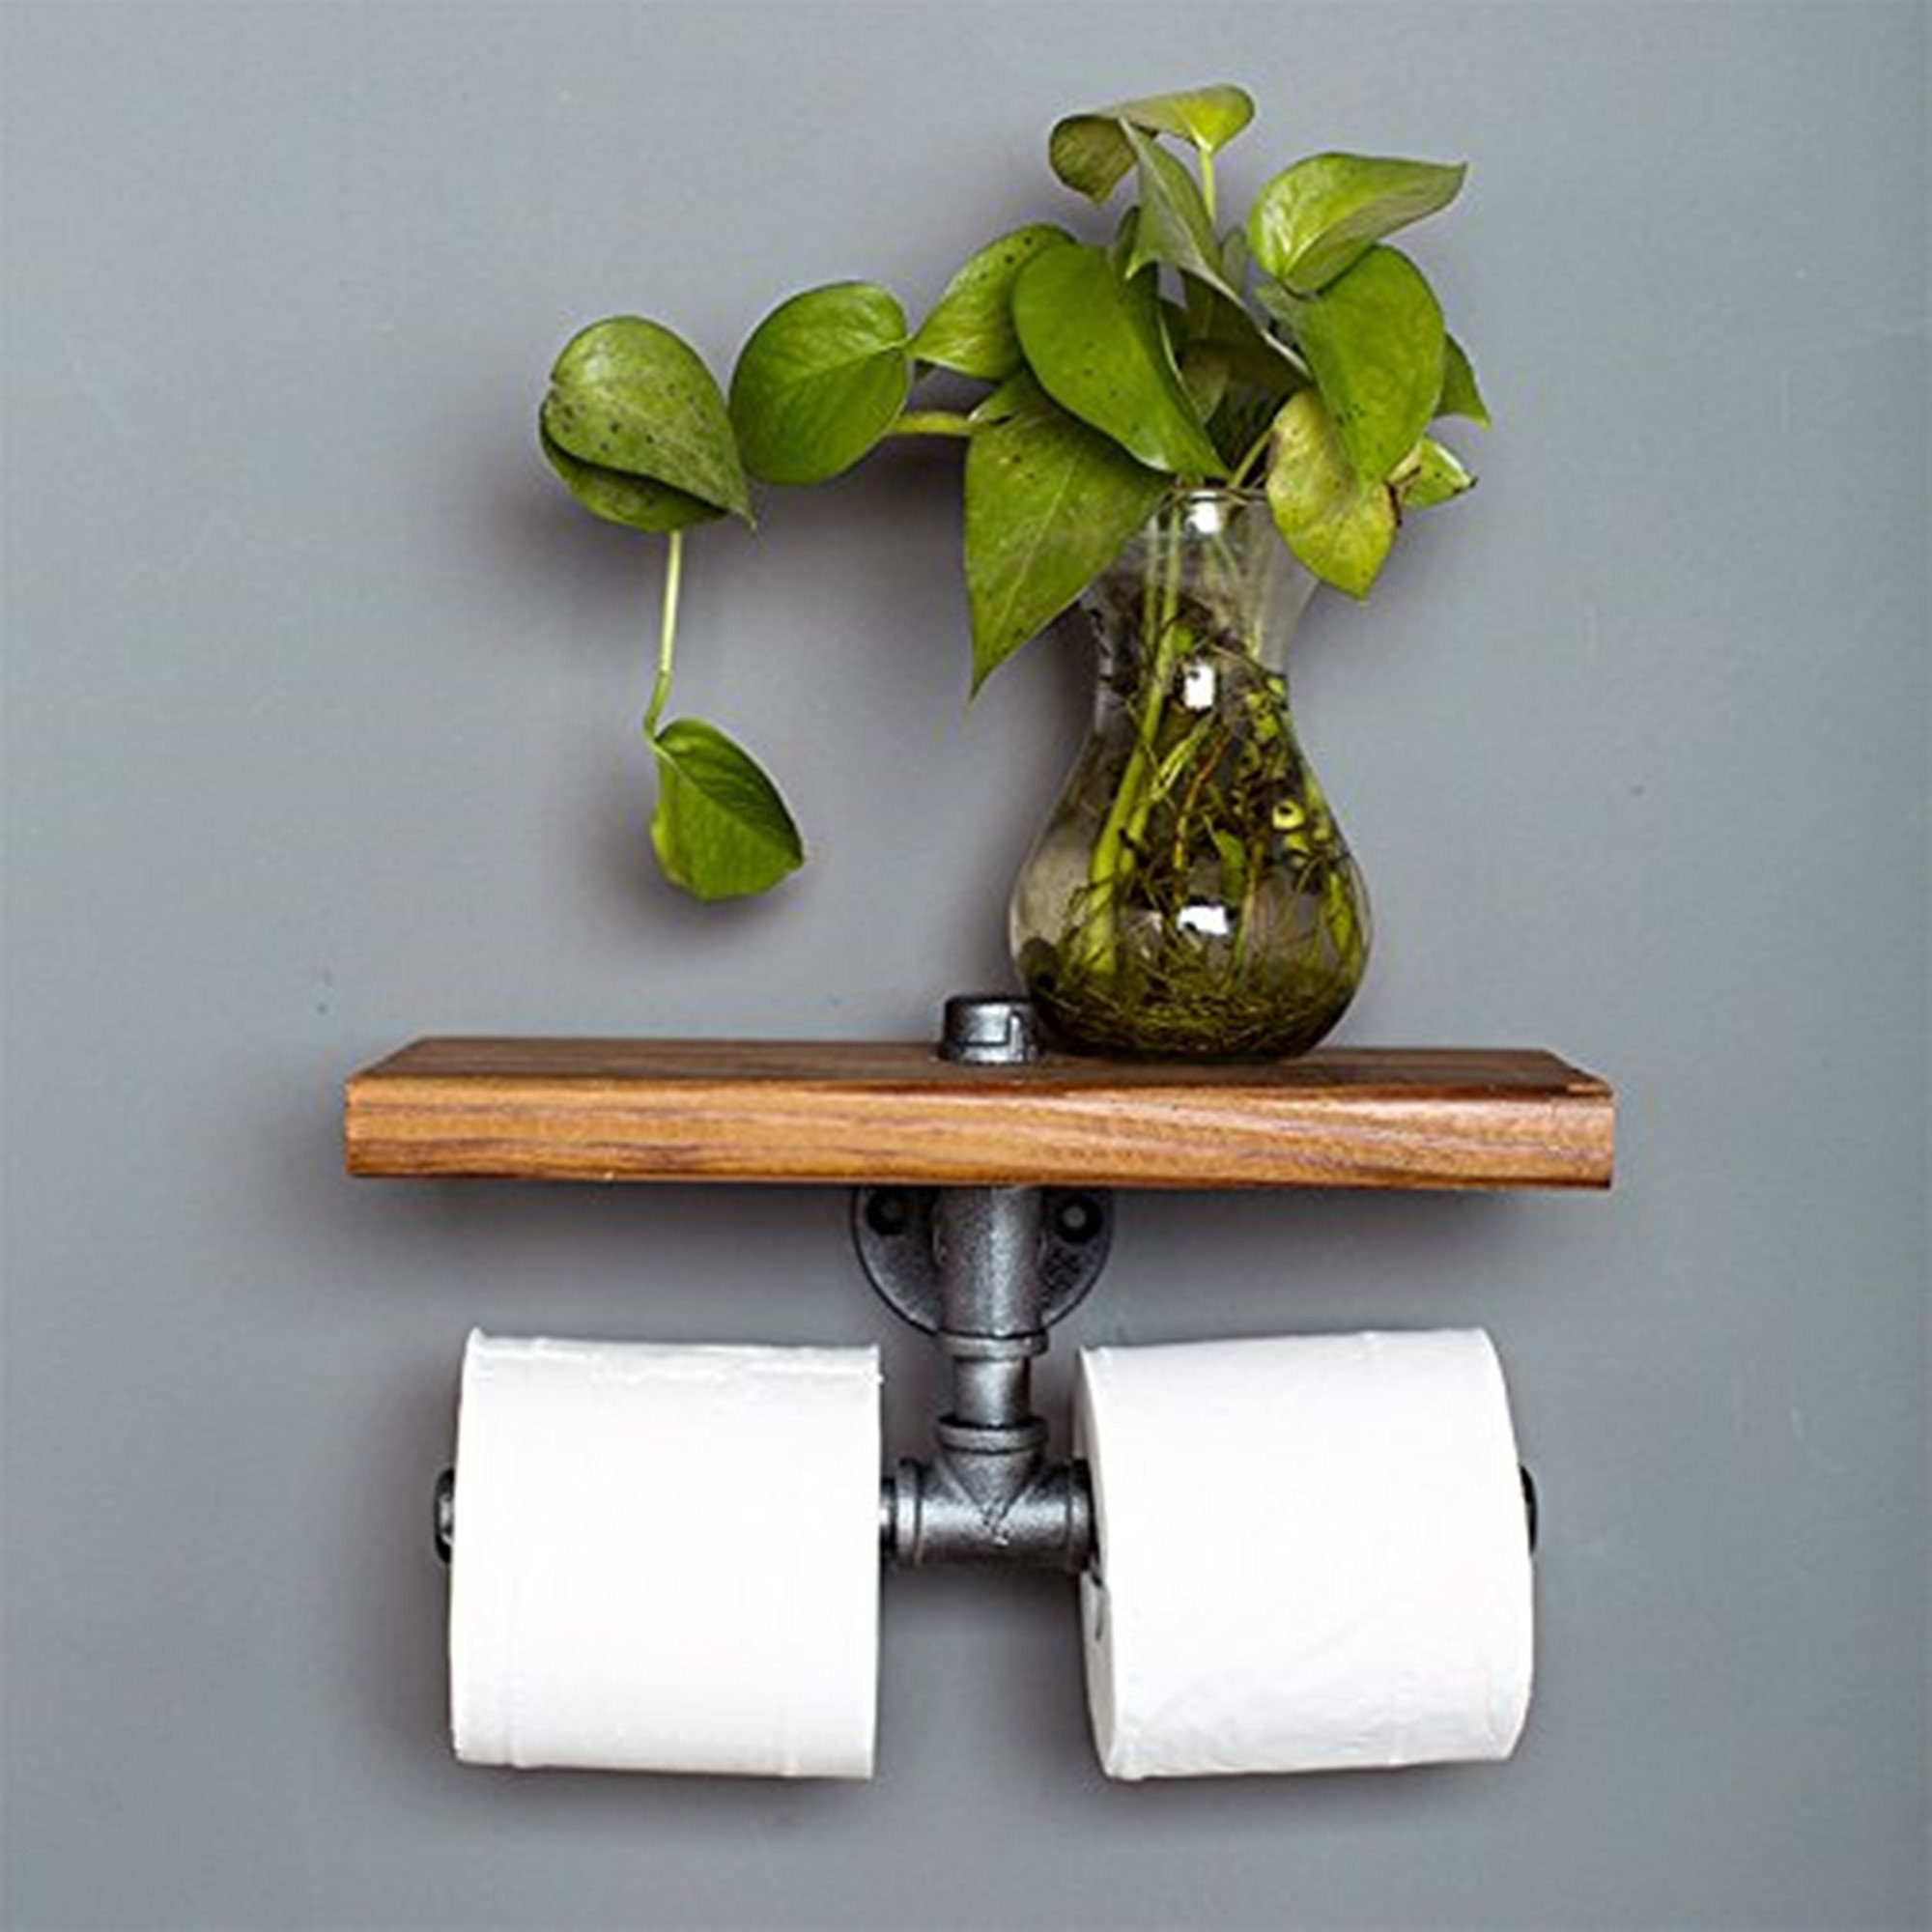 Industrial Toilet Paper Holder with Wooden Shelf or Stainless steel,Toilet Tissue Roll Holder,Rustic Style Water Pipe Wall Mounted,Fashion Display Shelves With Instructions (Paper Towel Holders 02) by Non-Branded (Image #2)